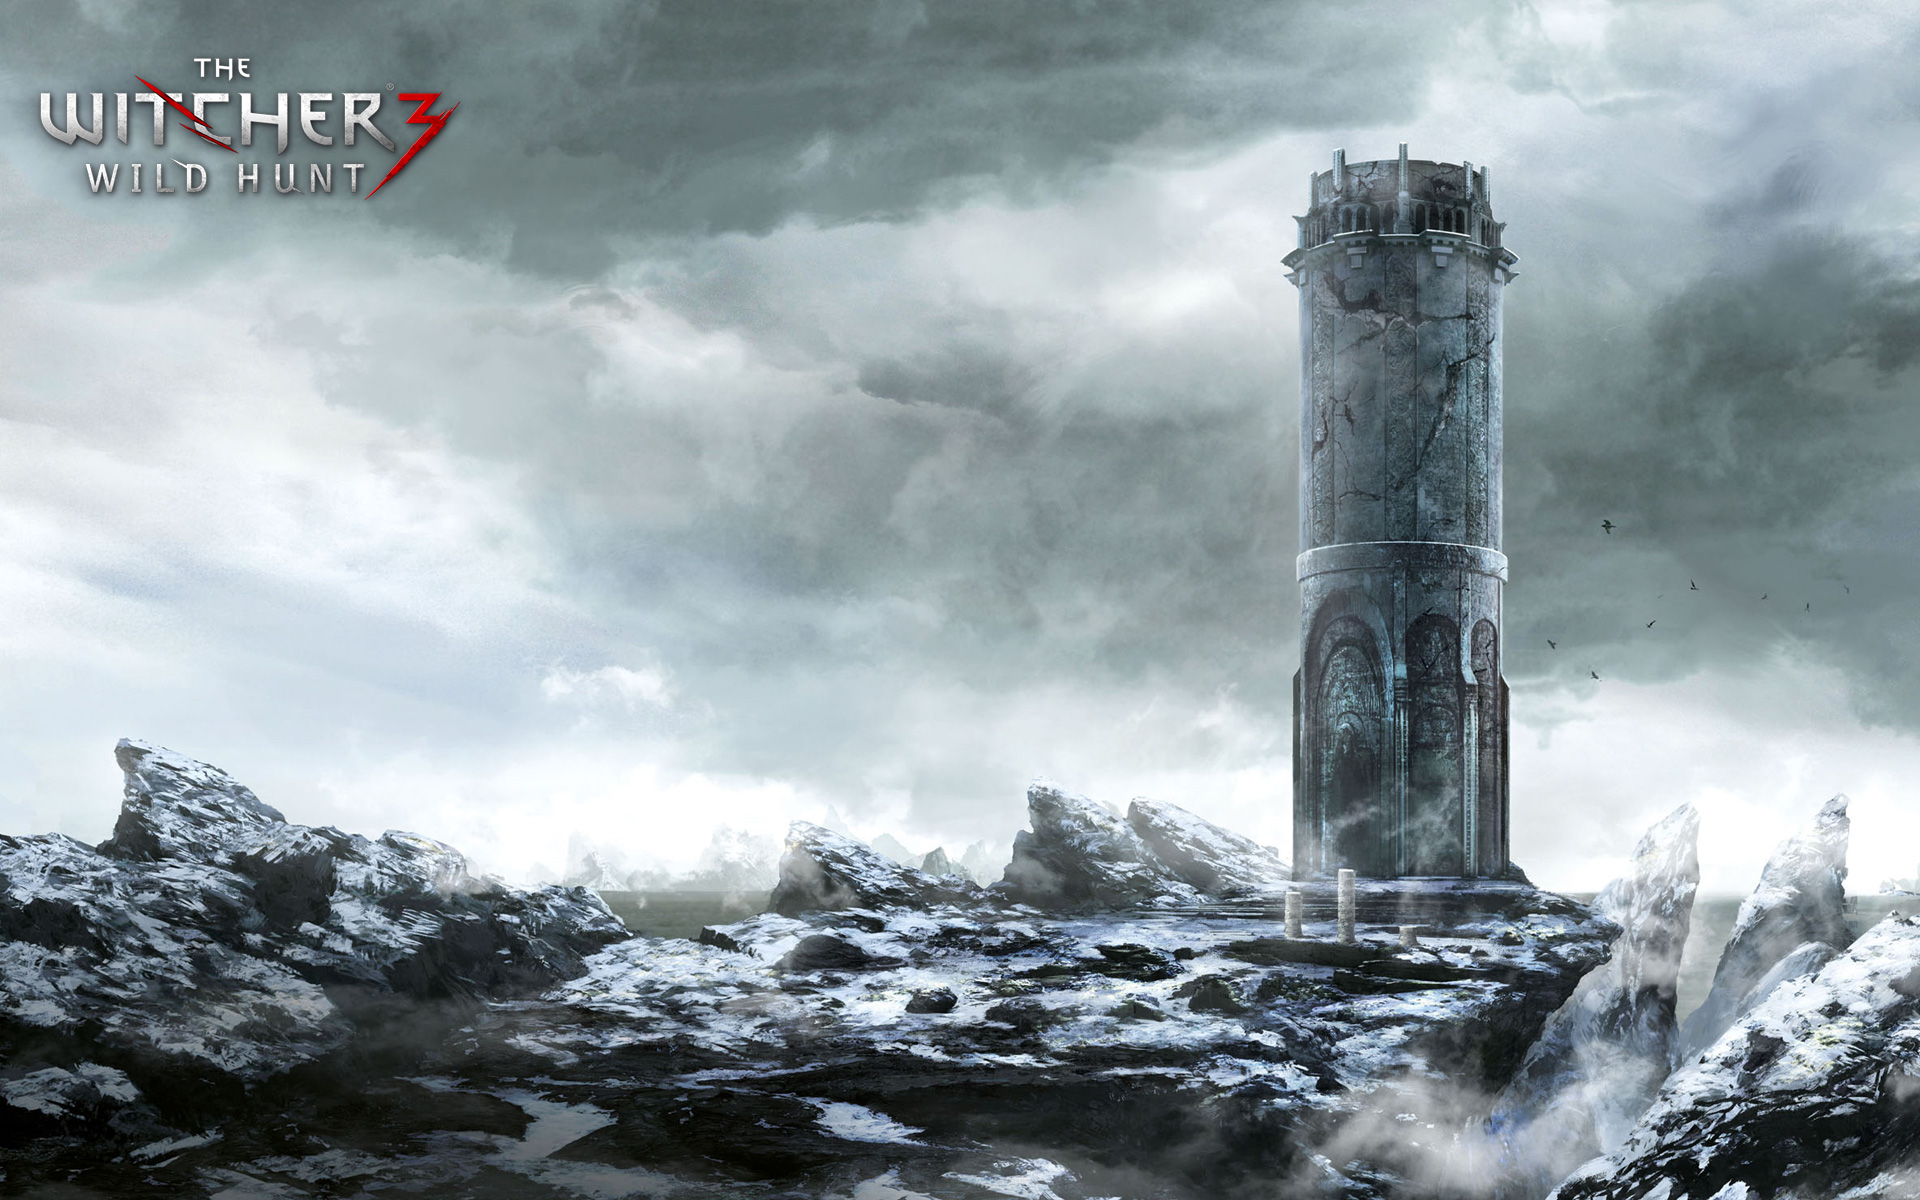 The Witcher 3 Tower Wallpaper